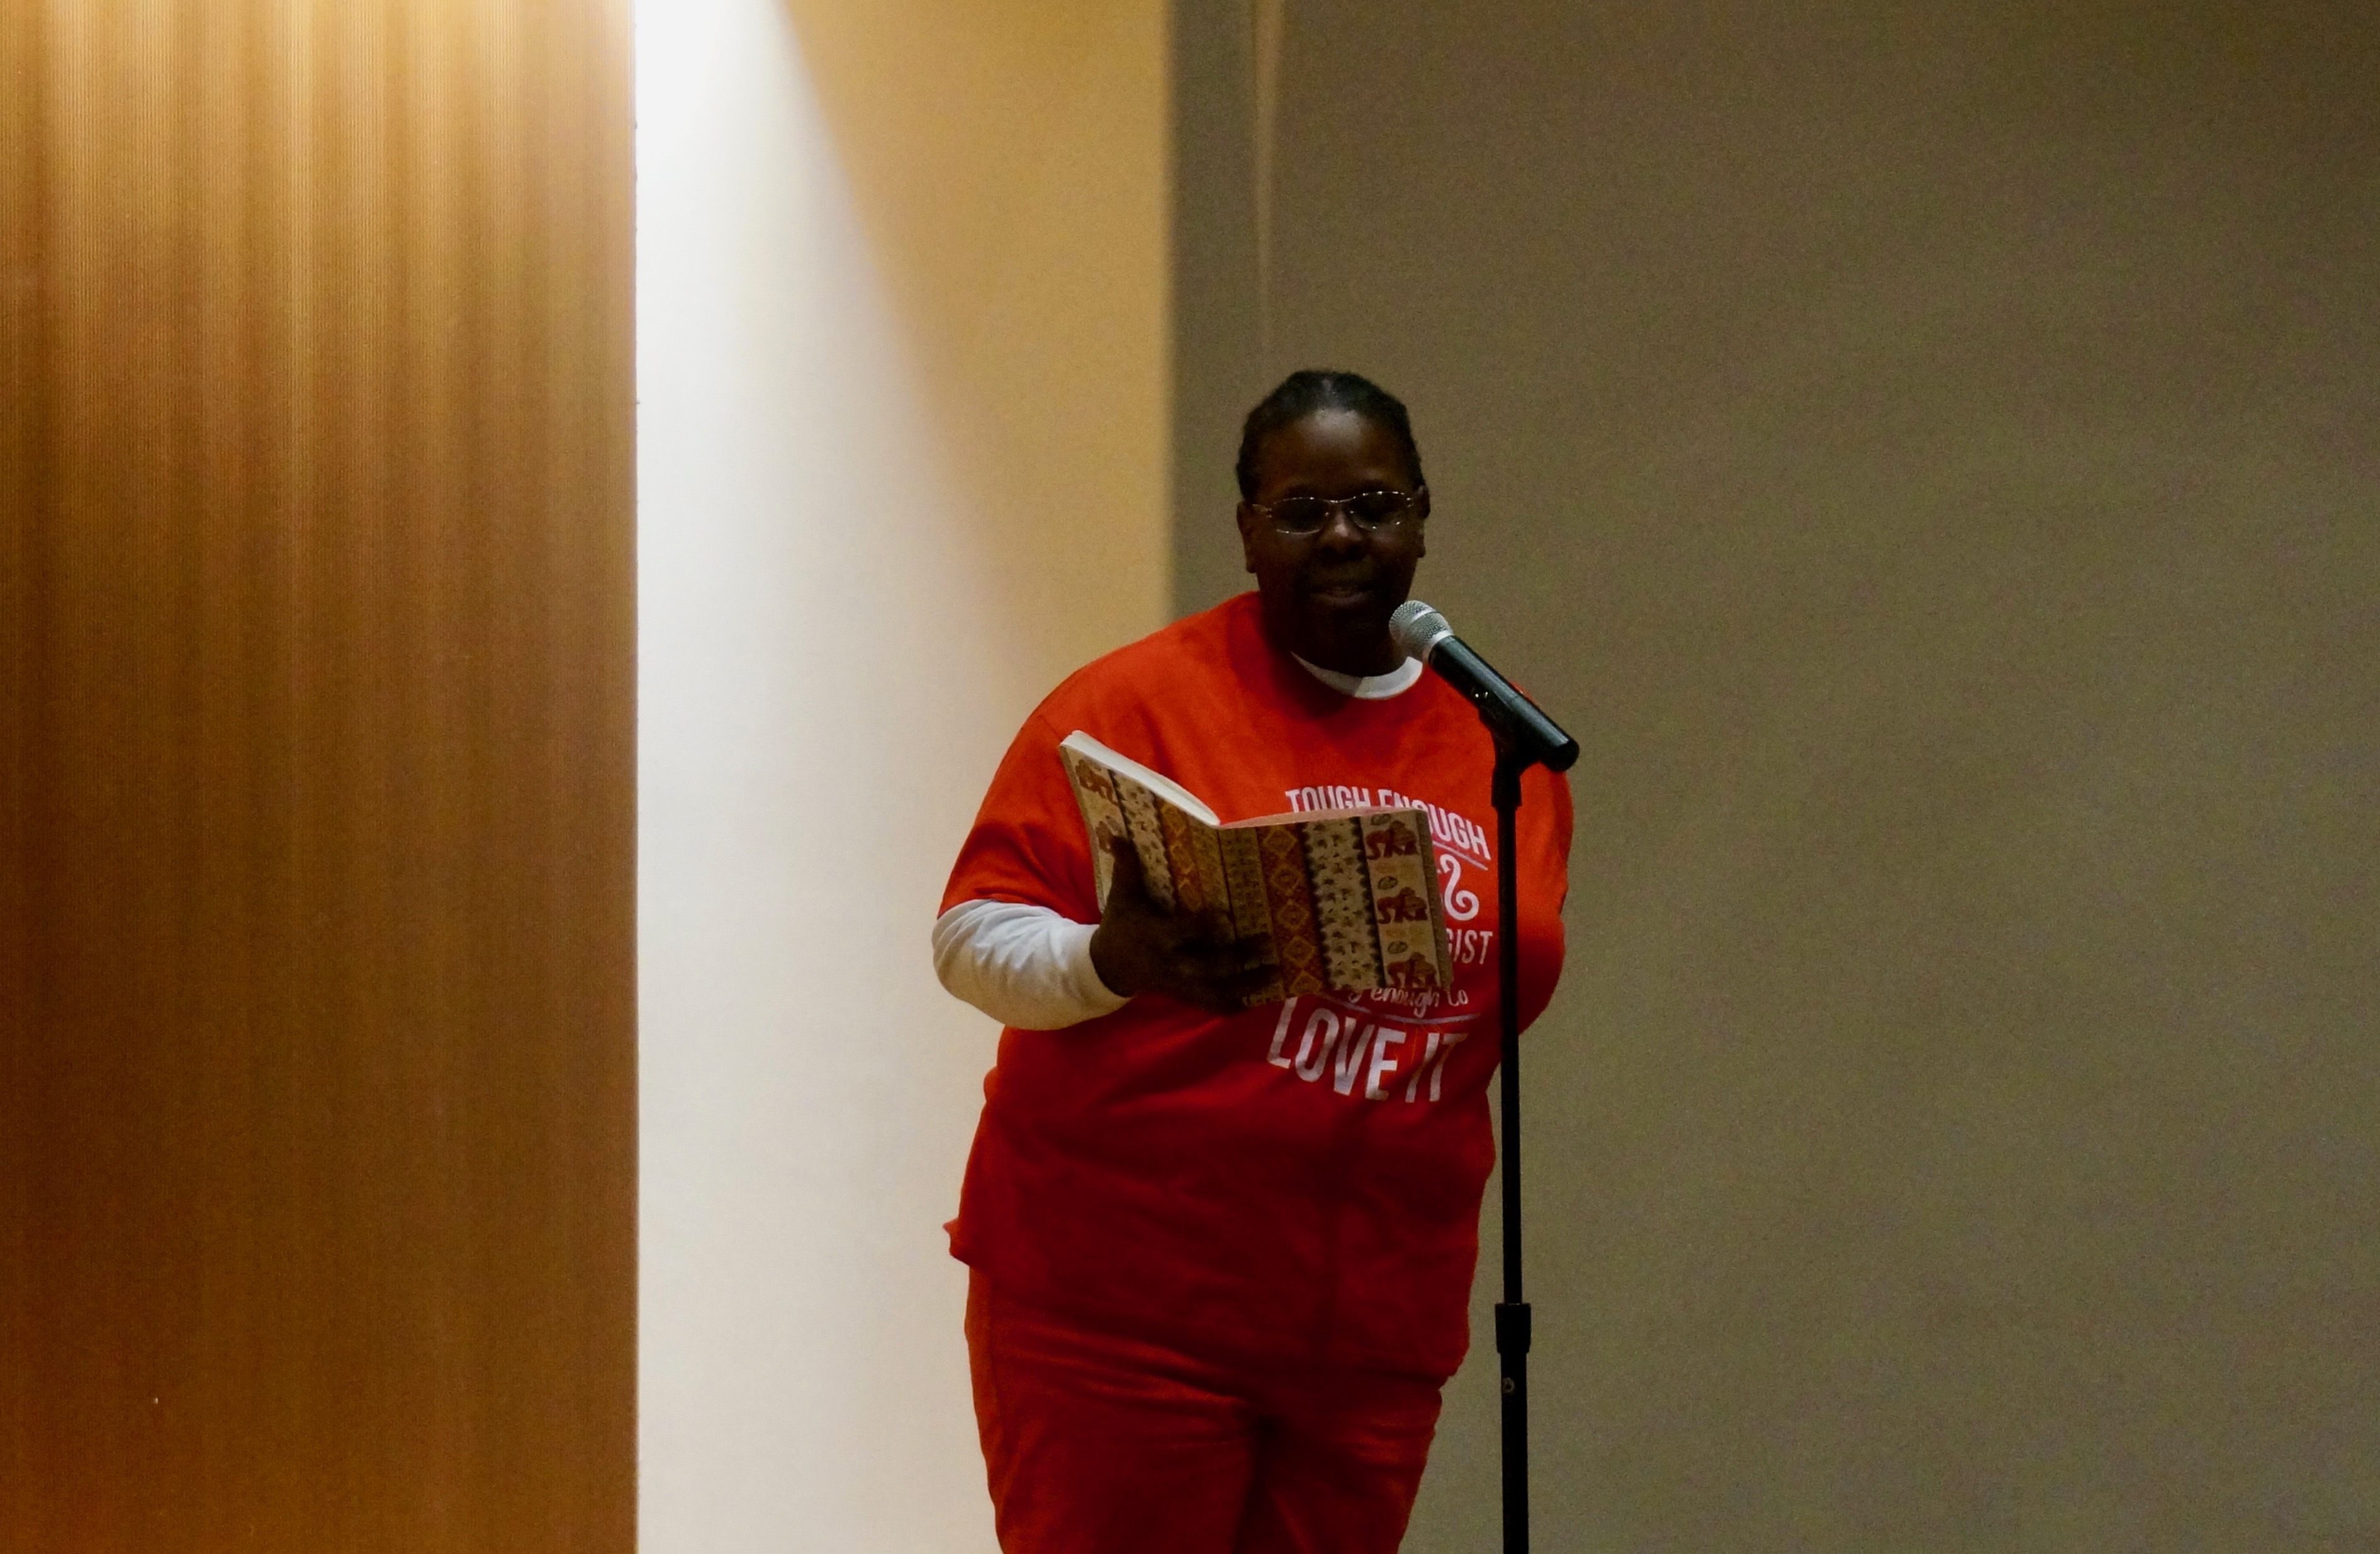 Anita Saunders, an Indianapolis Public Schools psychologist, talks about her first classroom salary at a Chalkbeat story slam in March.